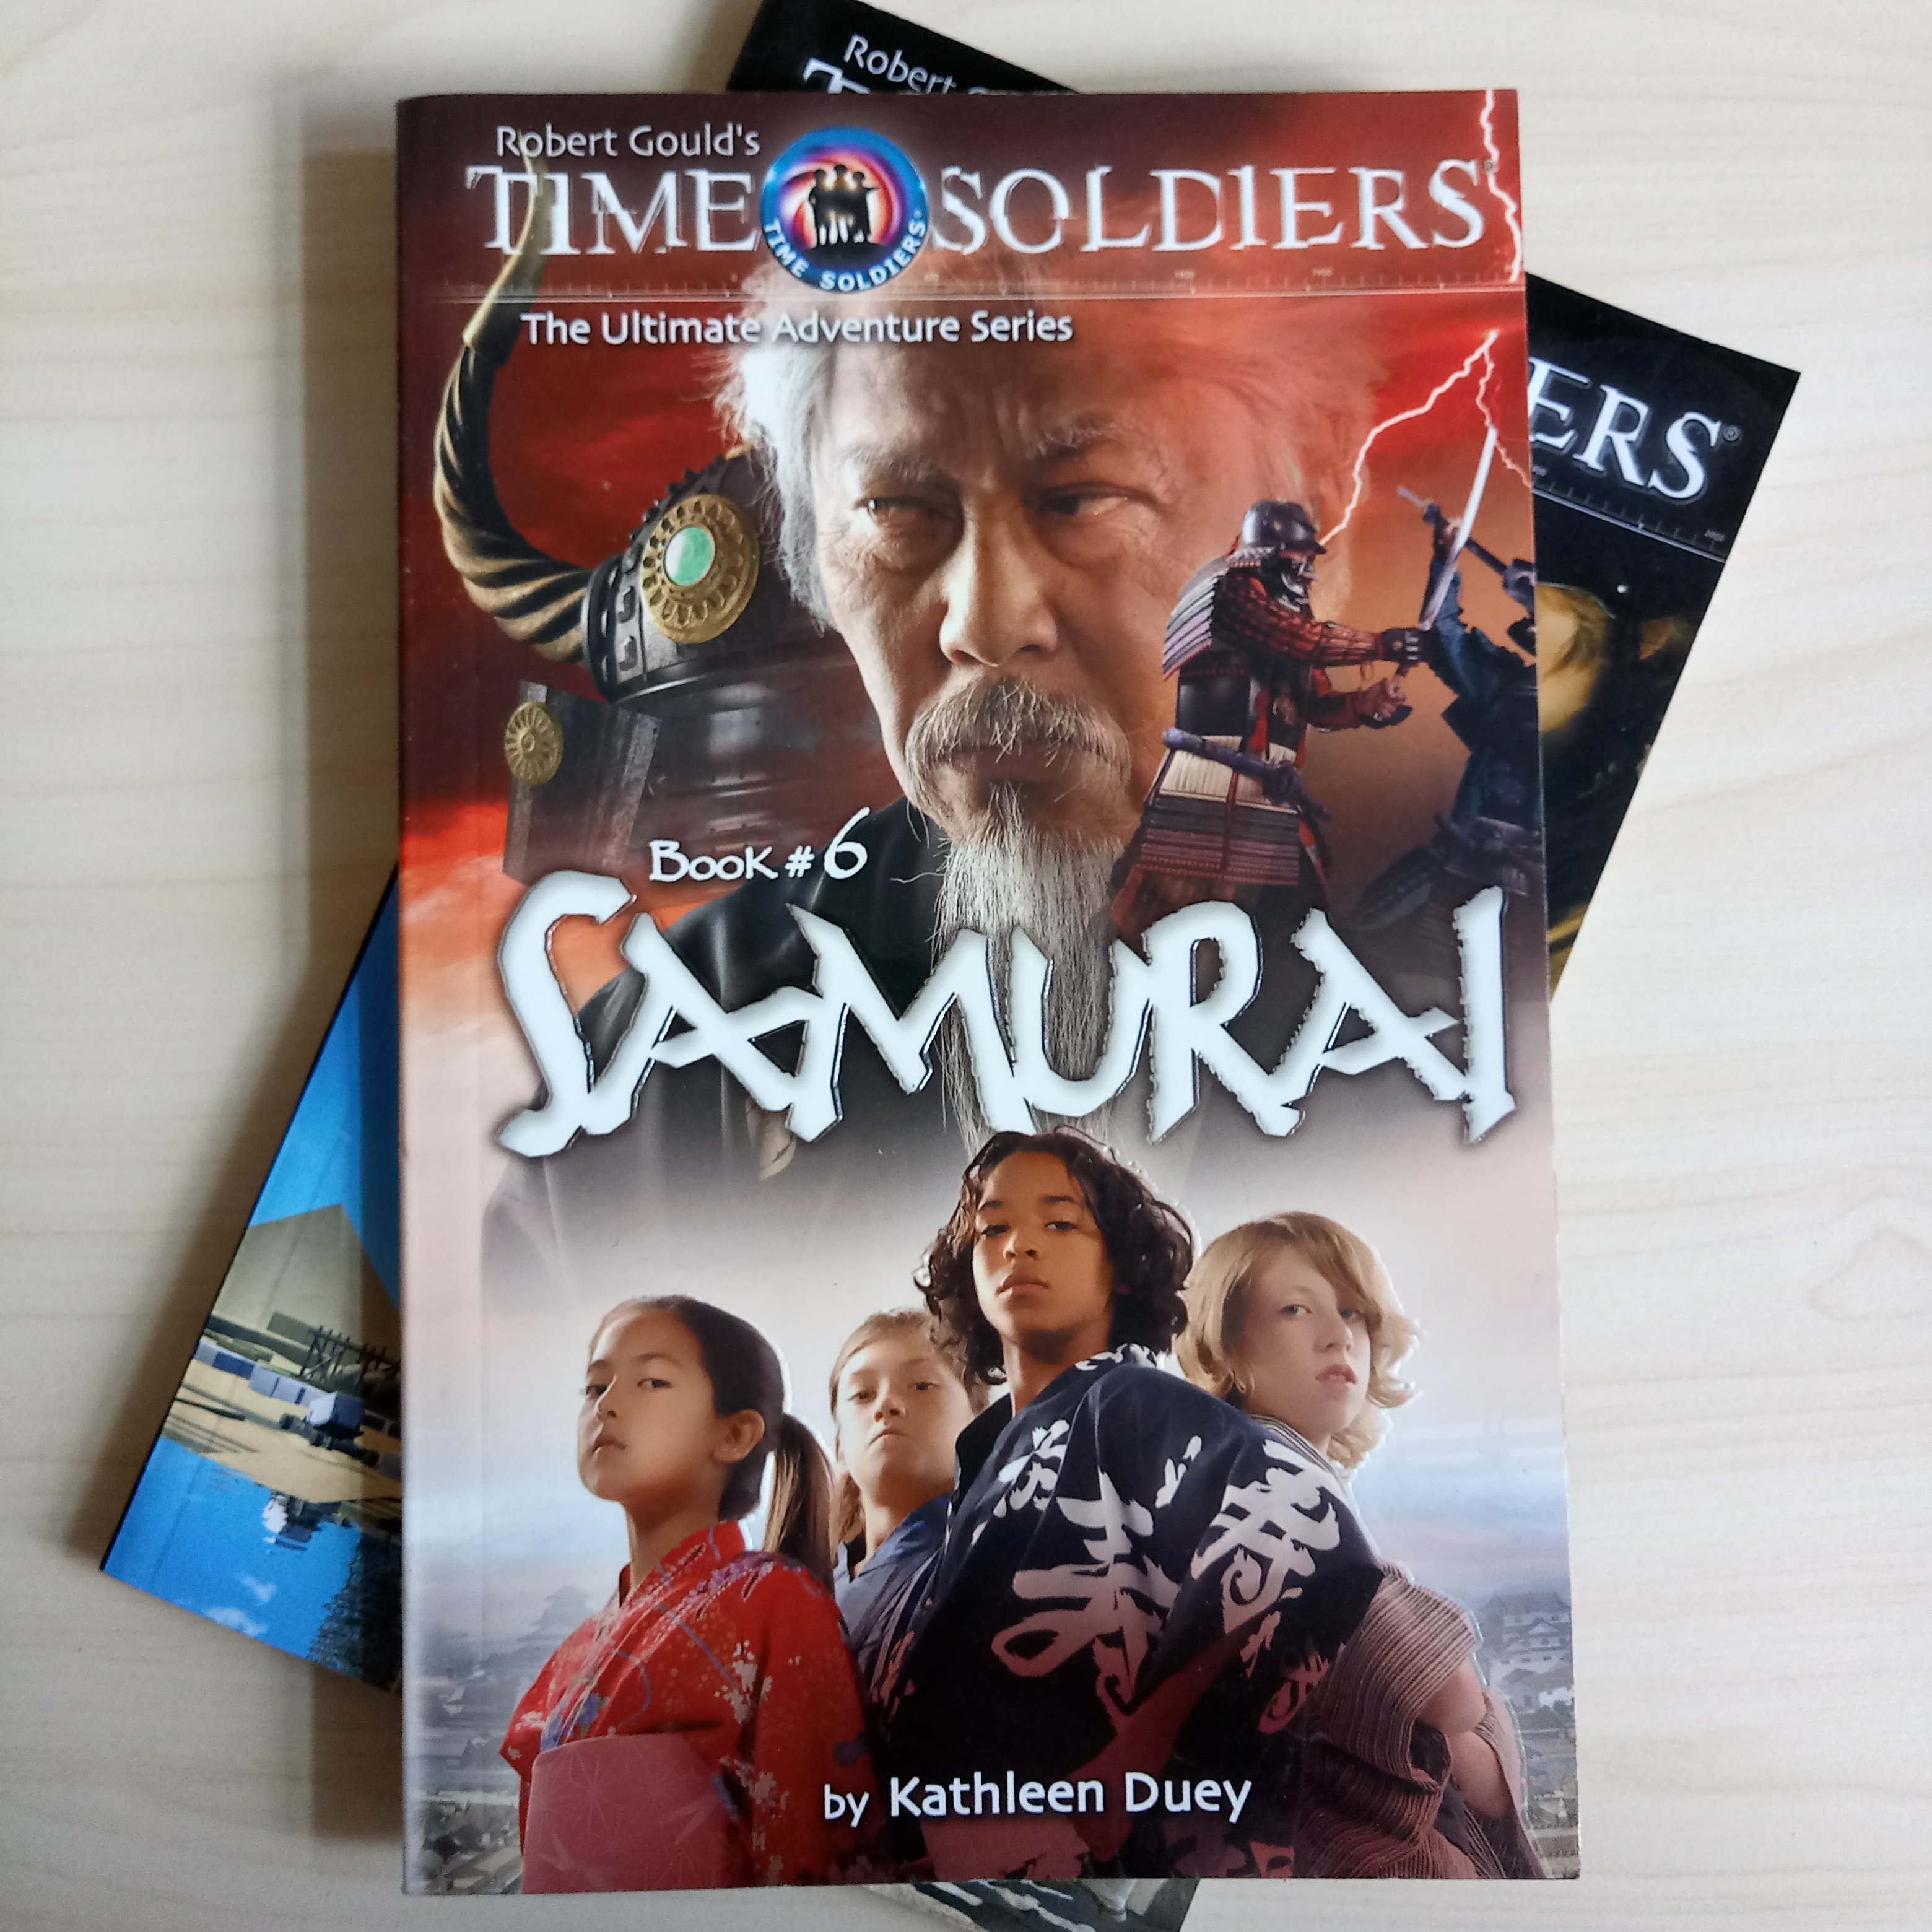 Robert Gould's Time Soldiers Book #6 Samurai (The Ultimate Adventure  Series) #1212